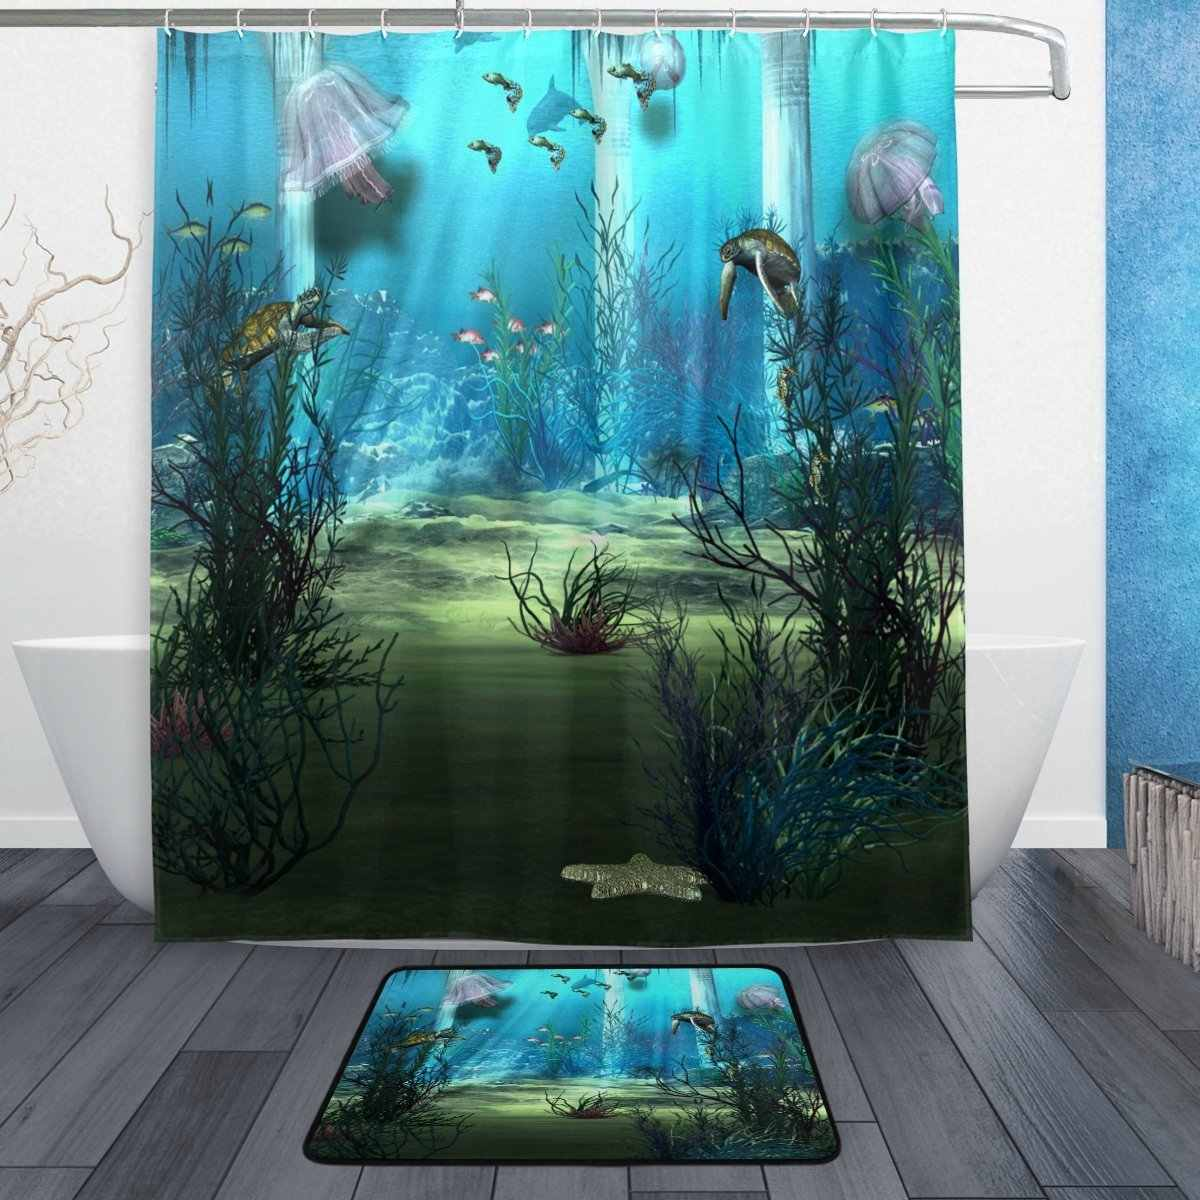 Sea Ocean Beach Shower Curtain and Mat Set, Underwater World Seajelly Turtle Waterproof Fabric Bathroom Curtain